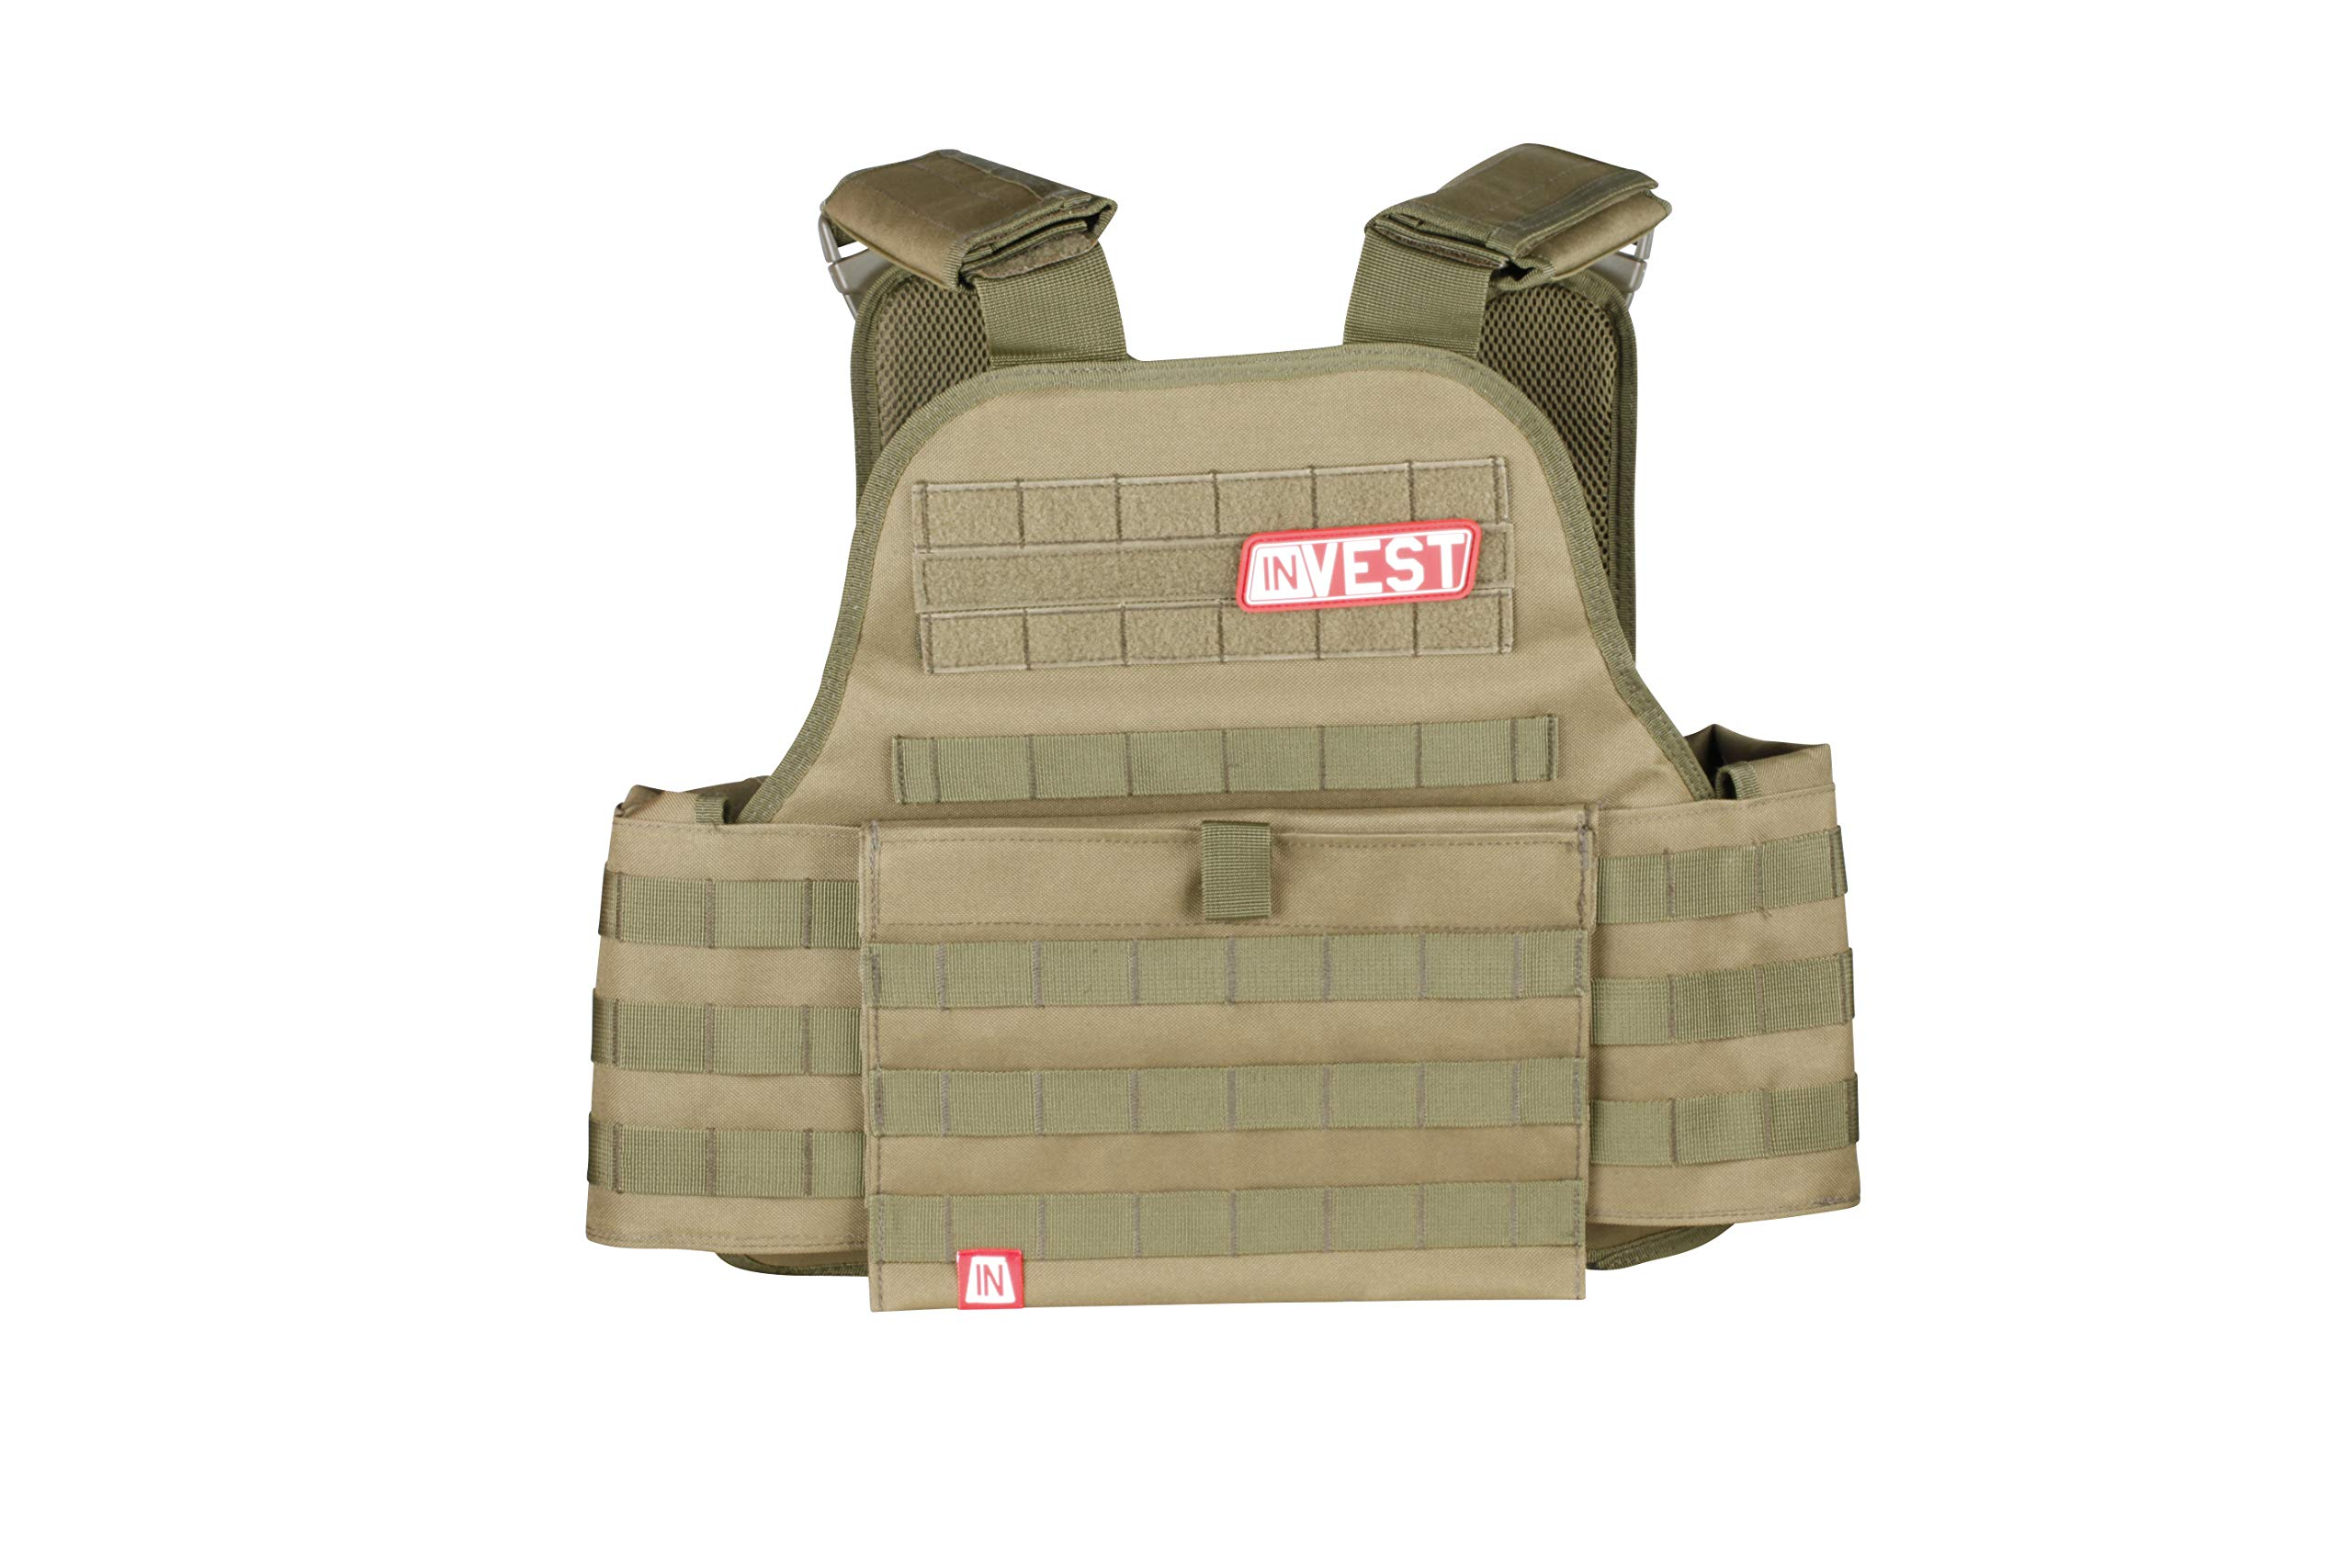 Invest Pro Weight Vest, 20 lbs. (Ranger Green)